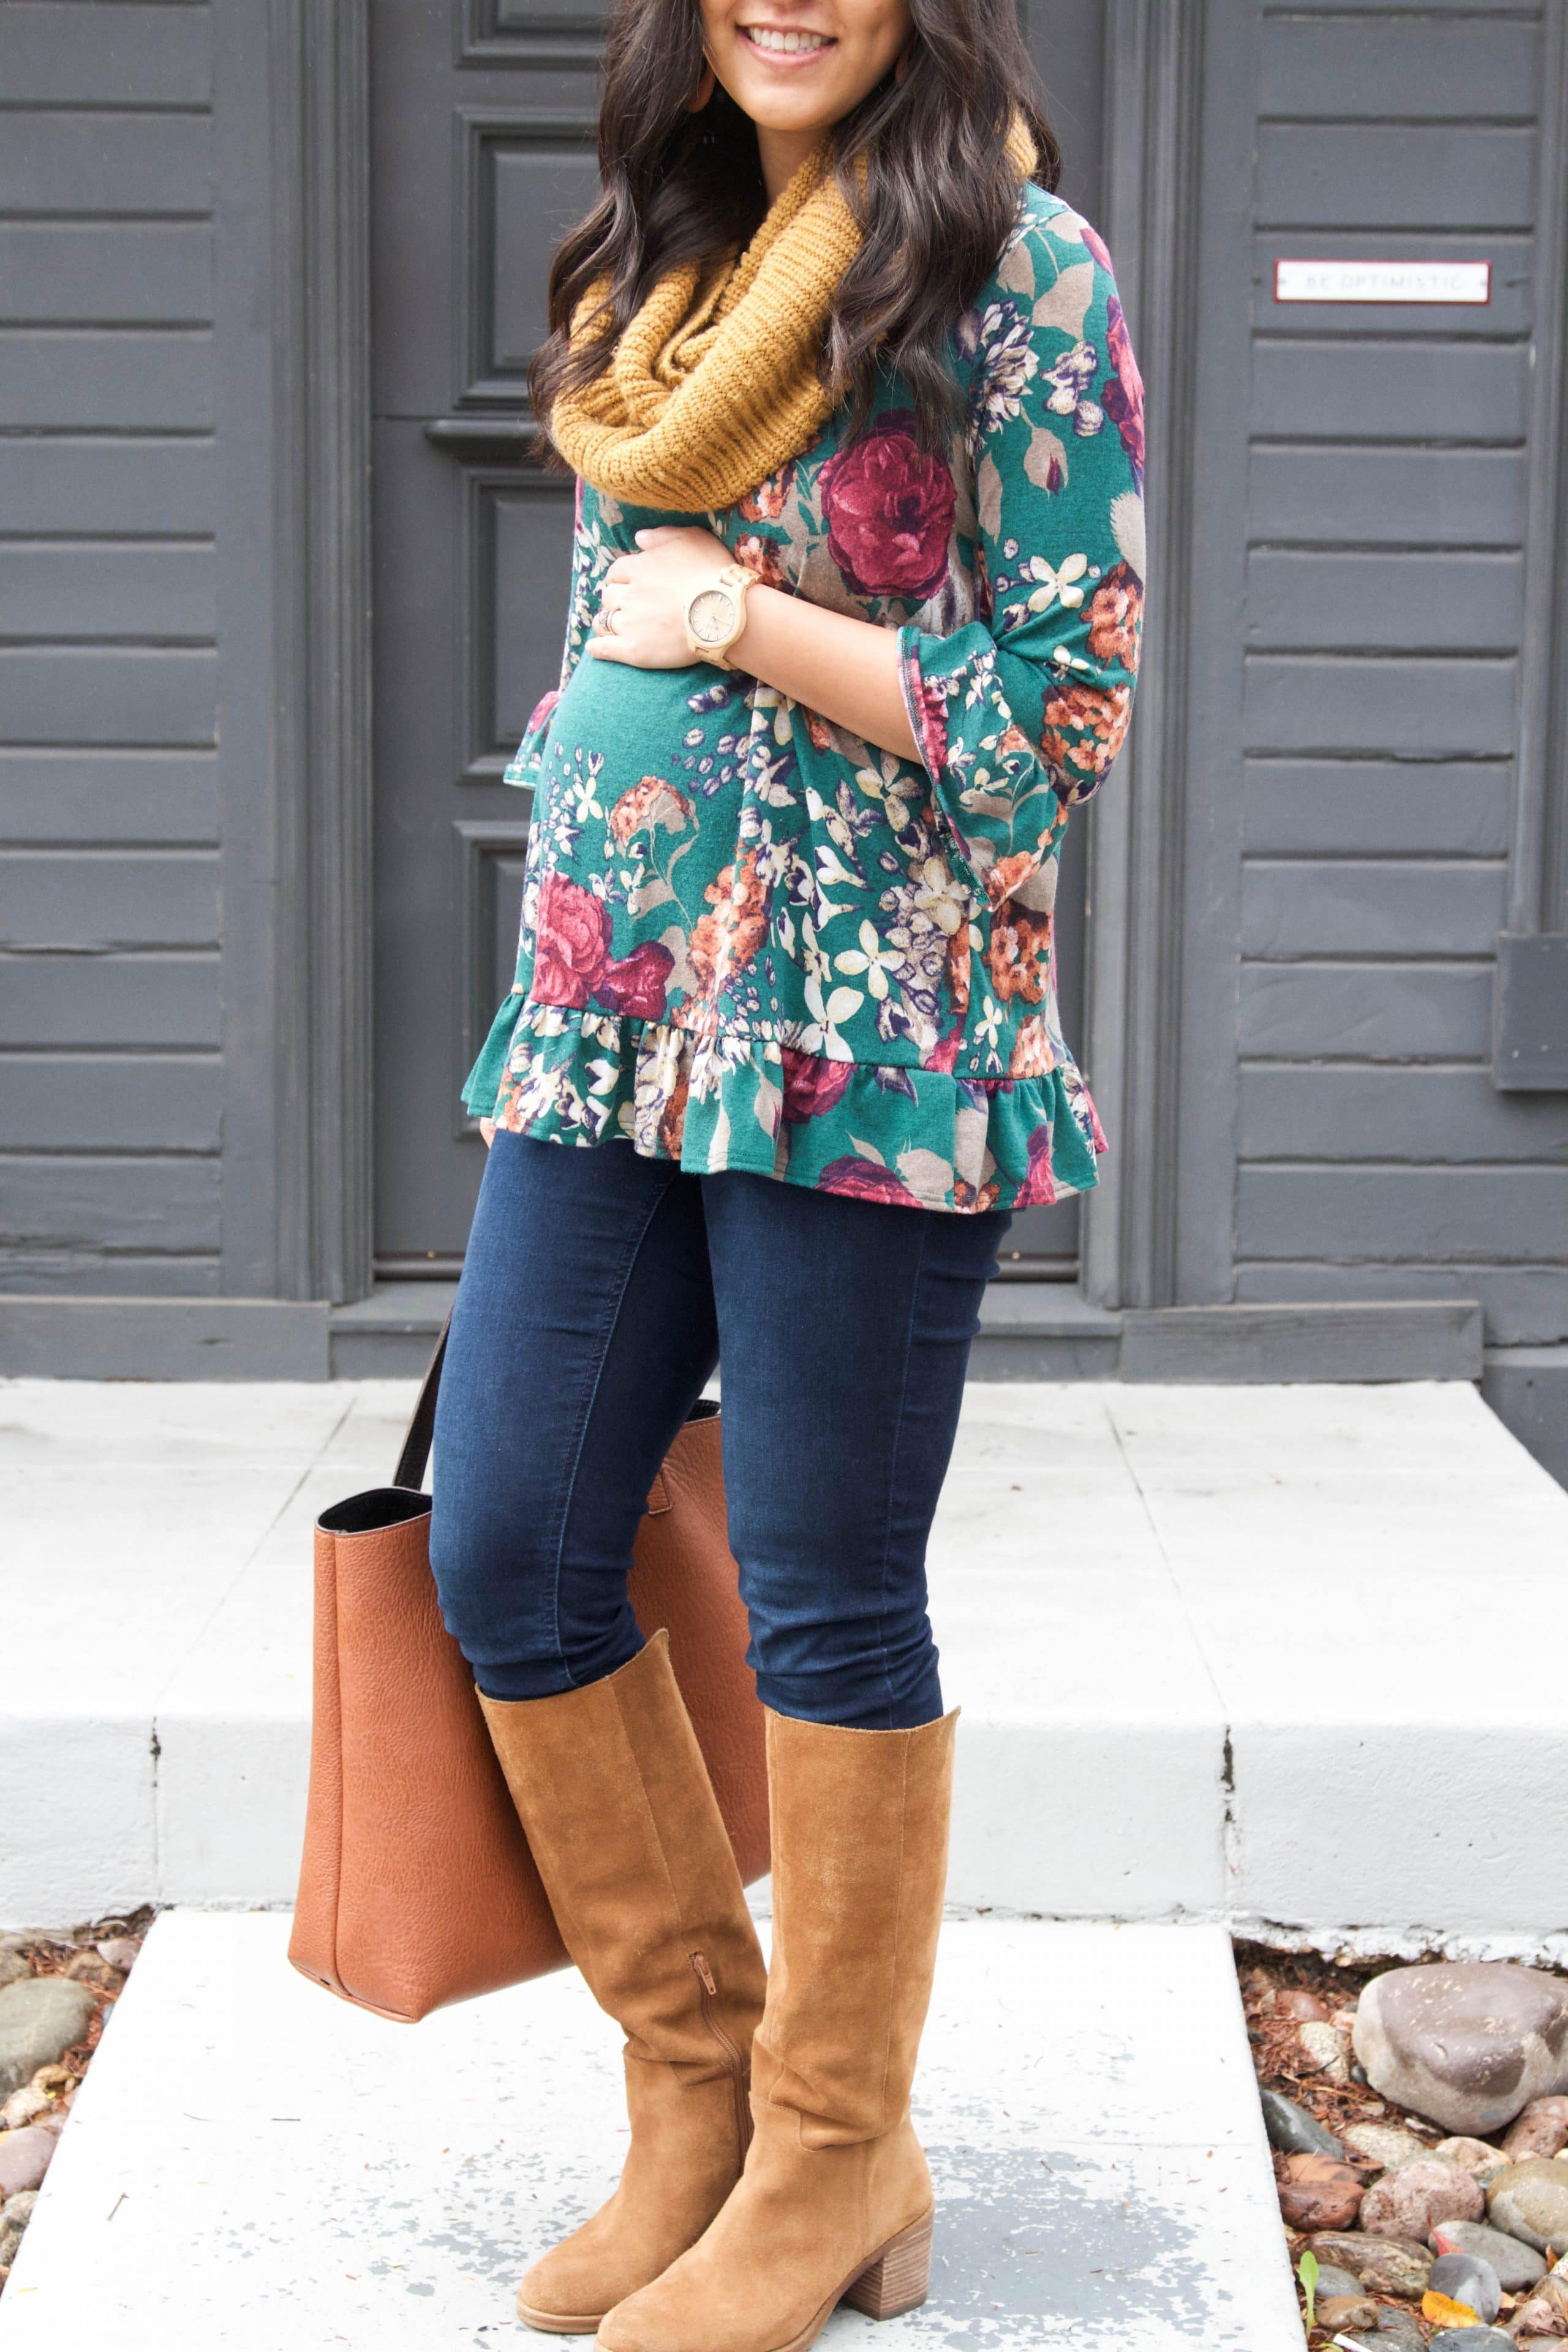 Floral Top + Cognac Bag + Boots + Skinnies + Infinity Scarf